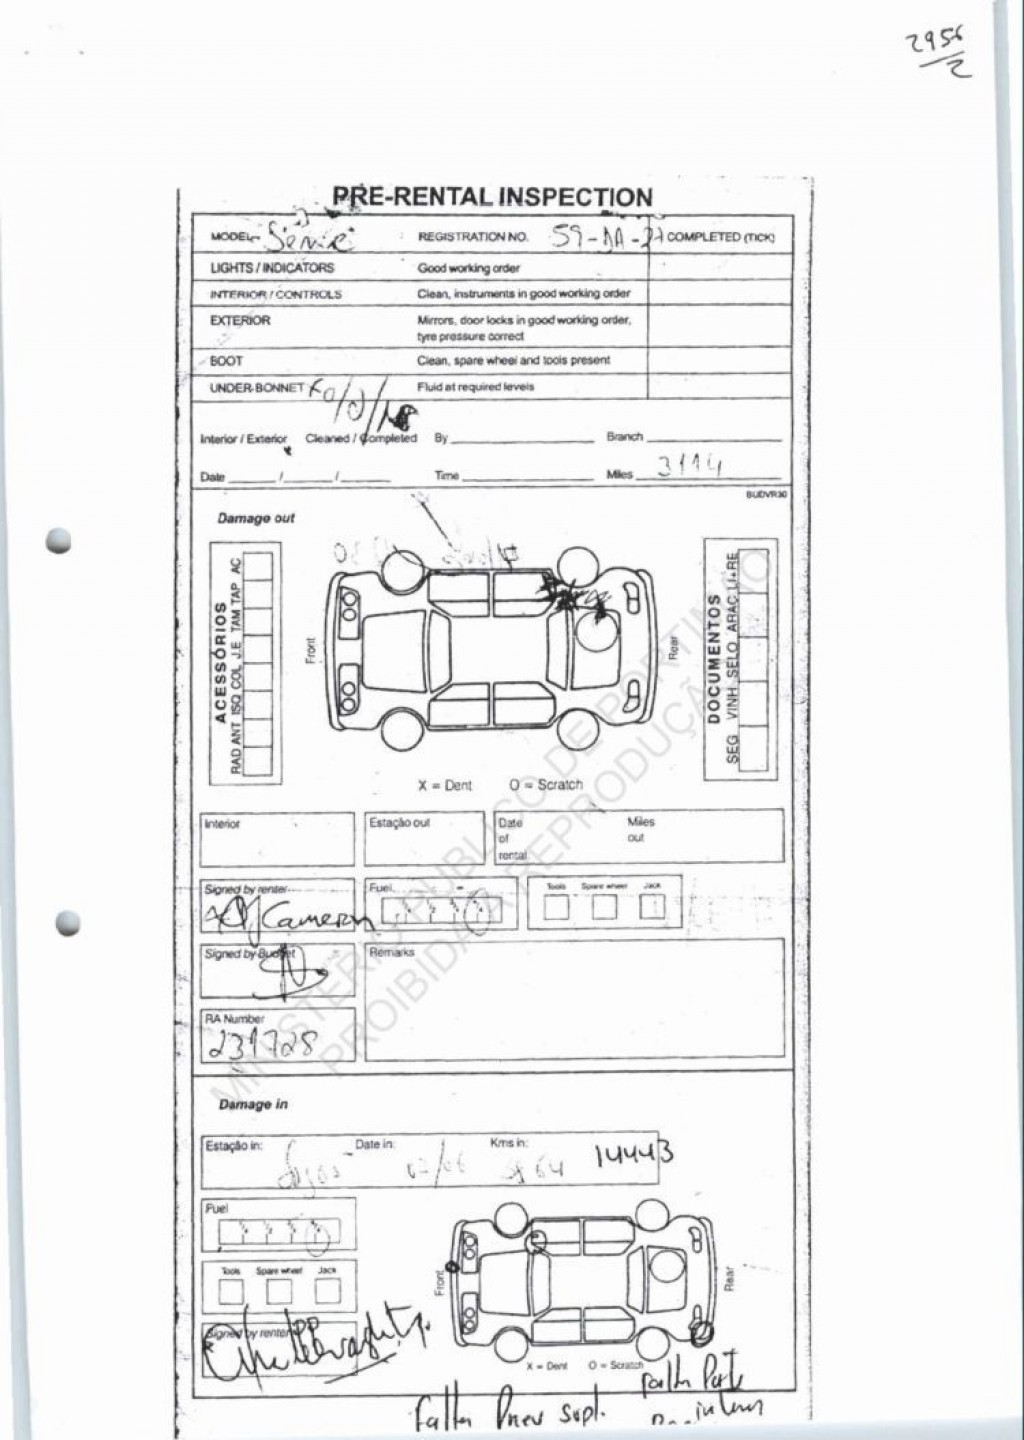 001 Marvelou Template For Car Hire Agreement Highest Clarity Large